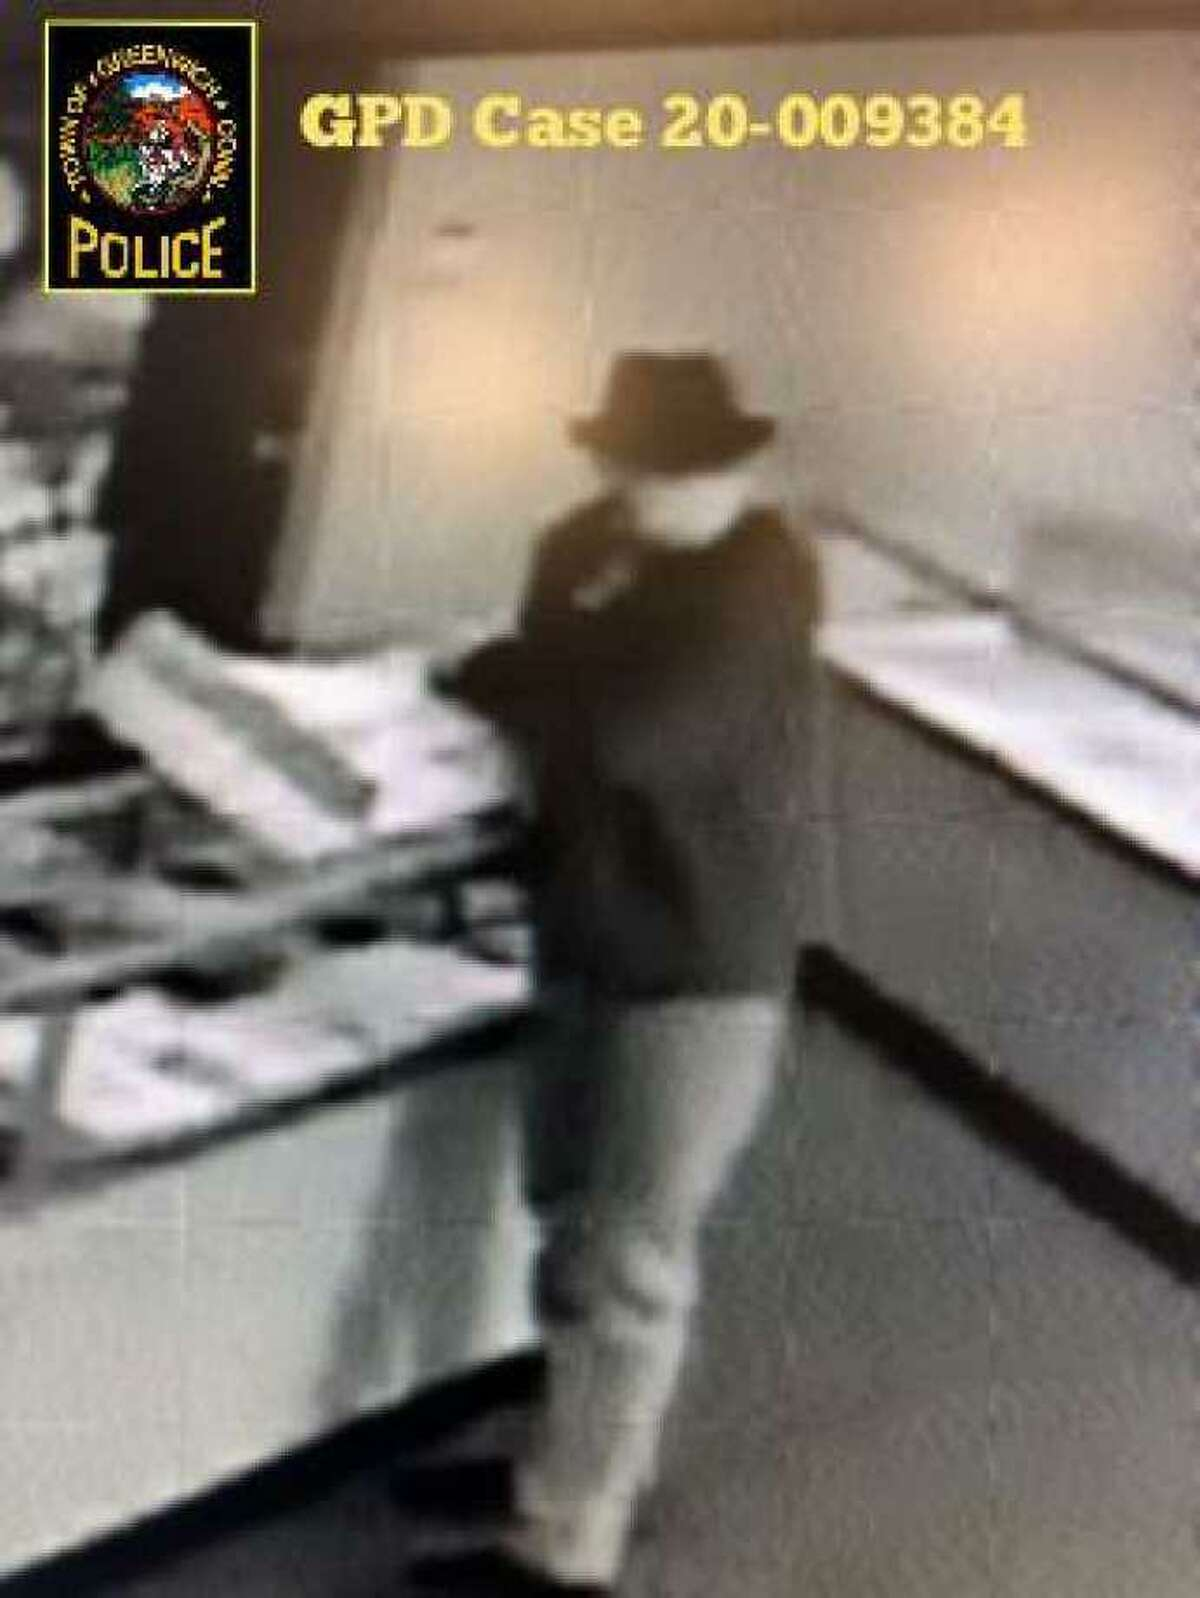 Police have apprehended a suspect in the robbery of a Byram jewelry store, and authorities say there is a connection to a robbery/homicide in Stamford March 28.